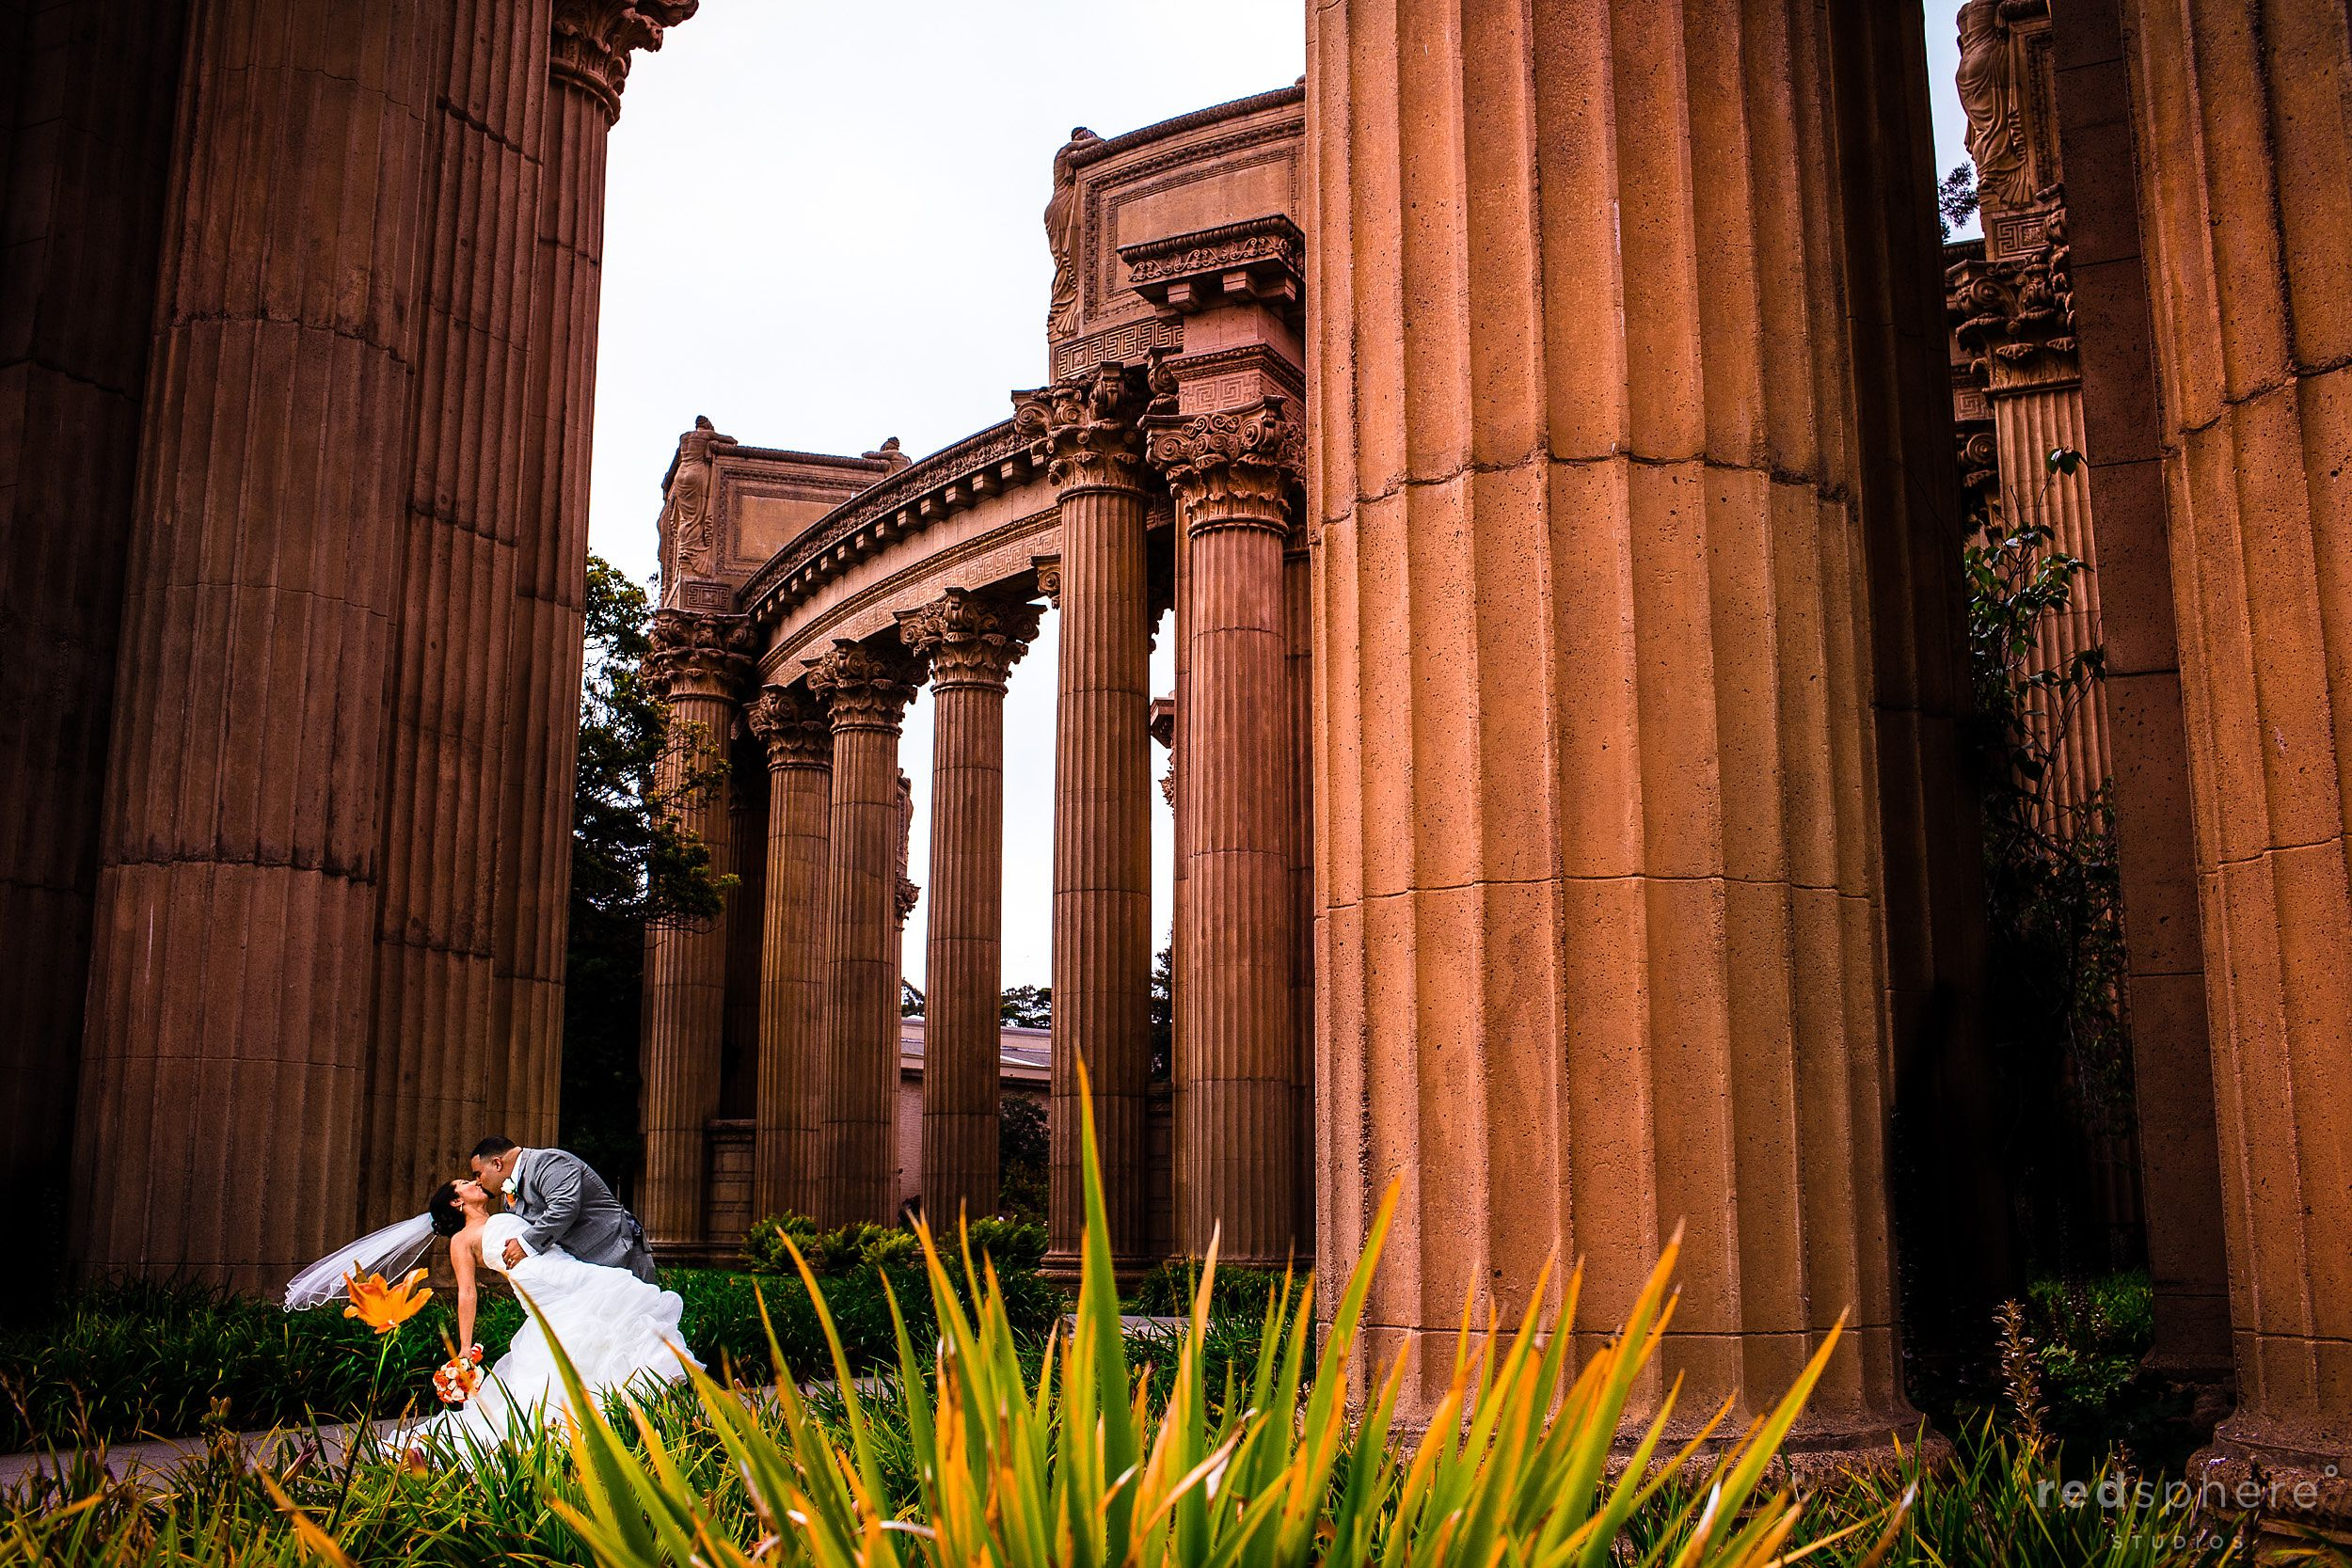 Bride and Groom Kiss Surrounded by Palace of Fine Arts Pillars